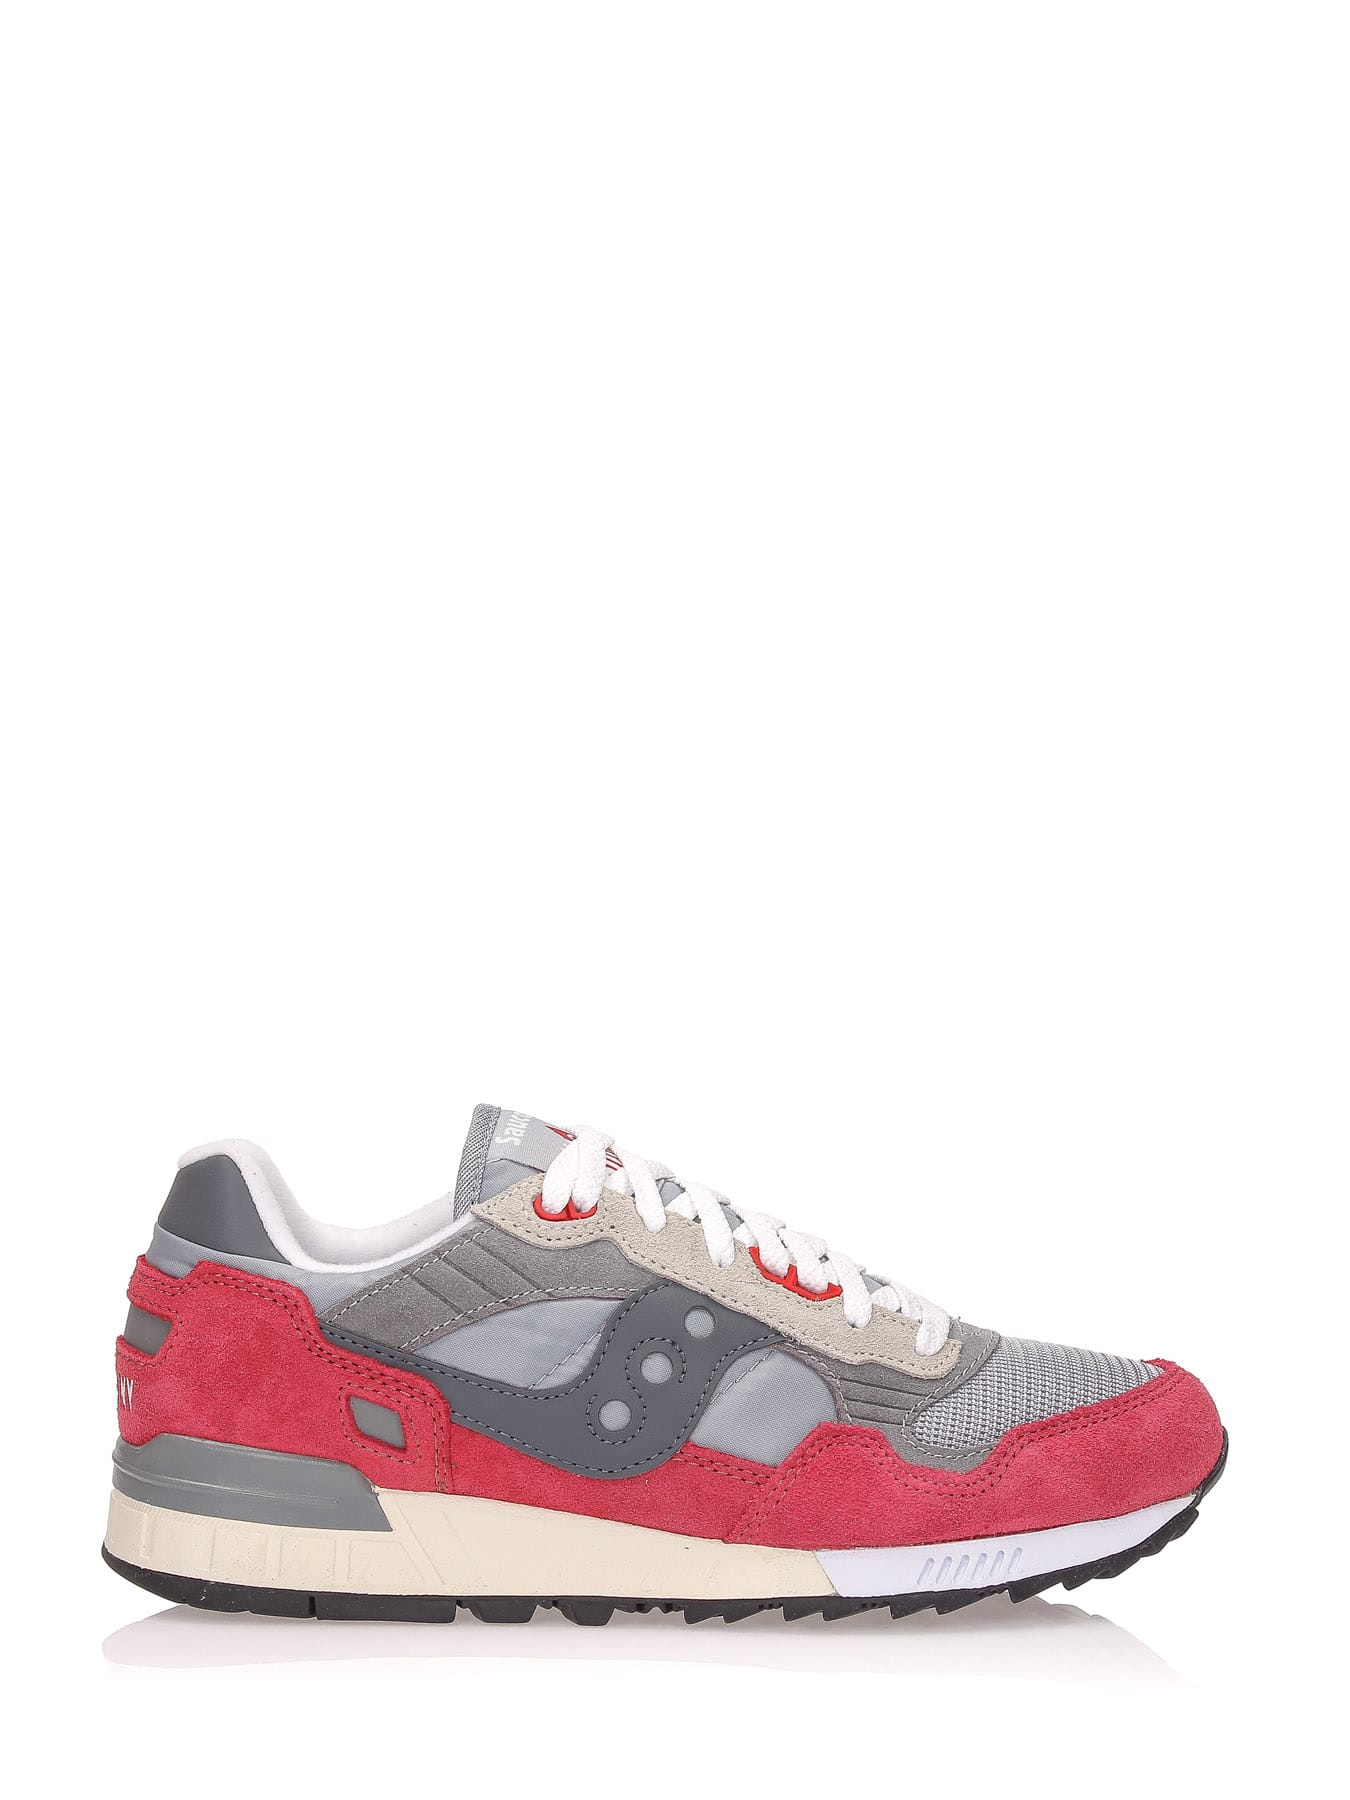 promo code 32e5e 71aab Saucony Sneakers Shadow 5000 Vintage